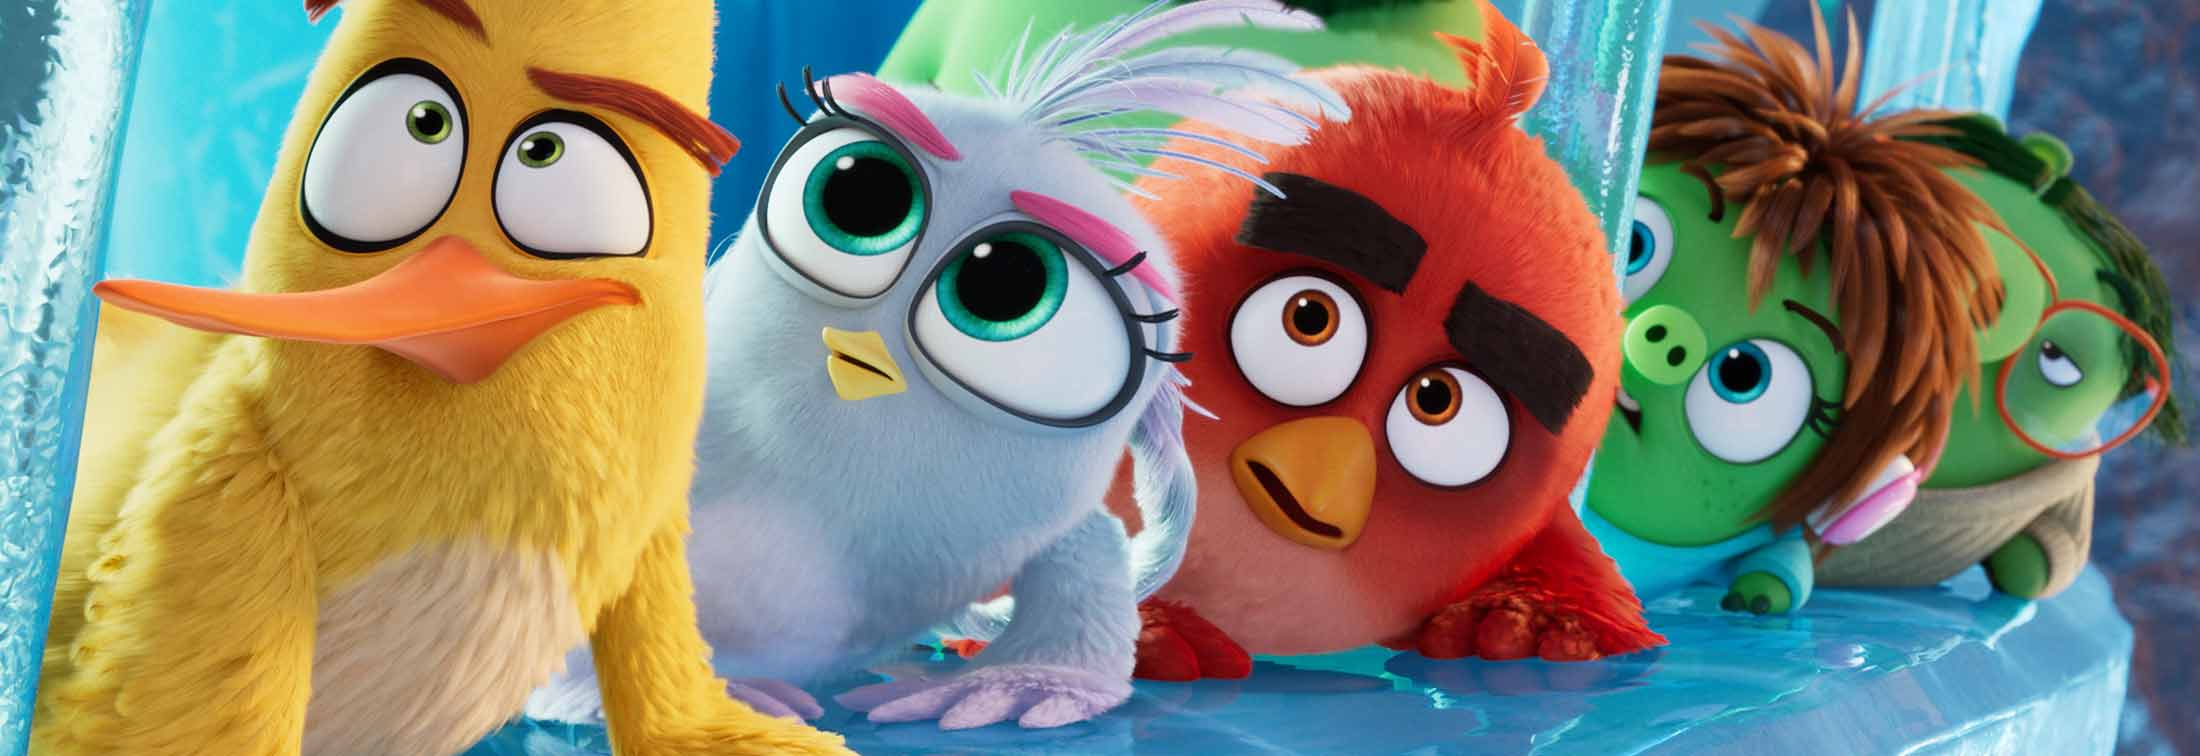 The Angry Birds Movie 2 - A fly-by-the-seat-of-your-pants adventure for the whole family